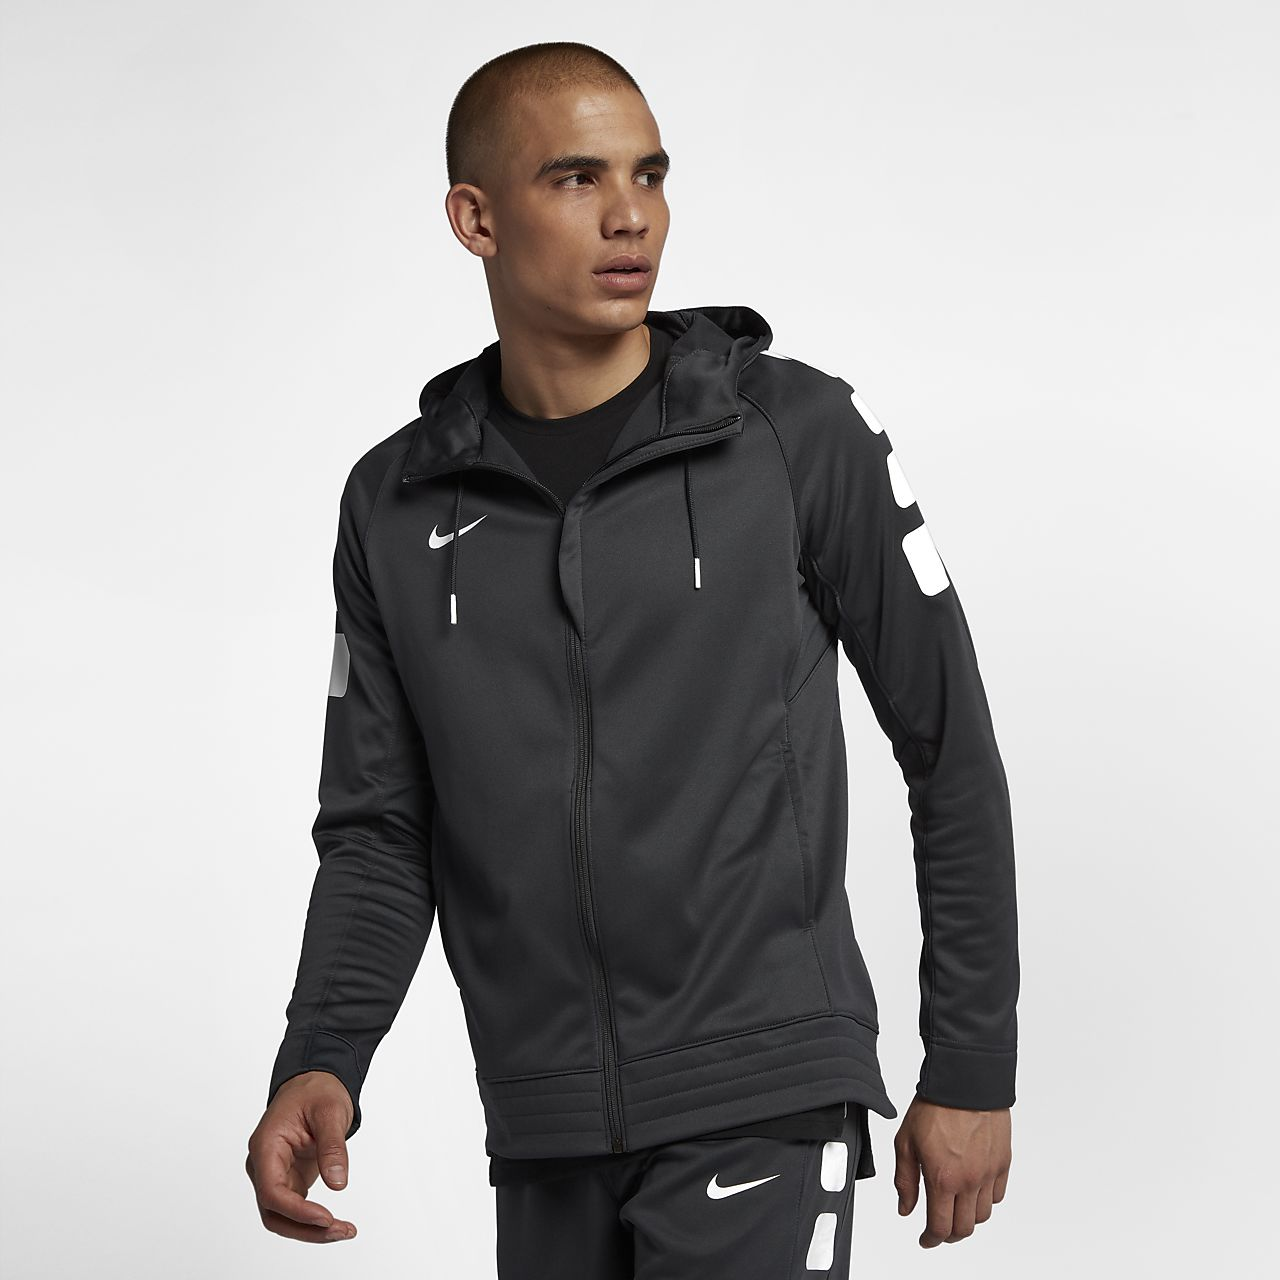 ca0211ccc0d2 Nike Therma Elite Men s Basketball Hoodie. Nike.com